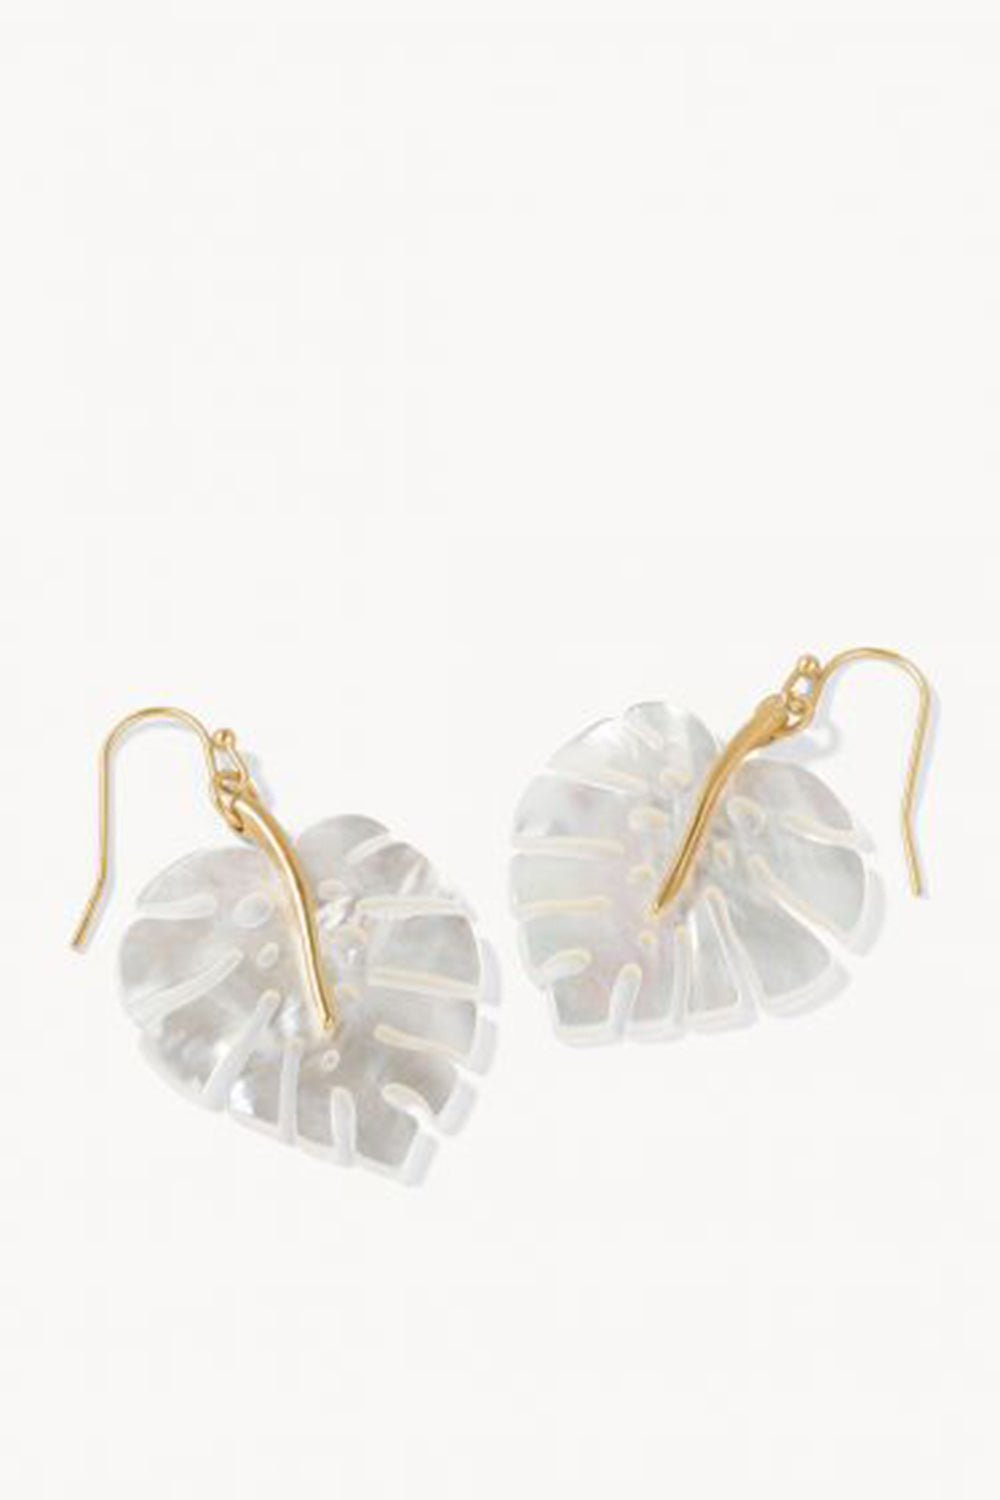 Monstera Earrings - Pearlescent